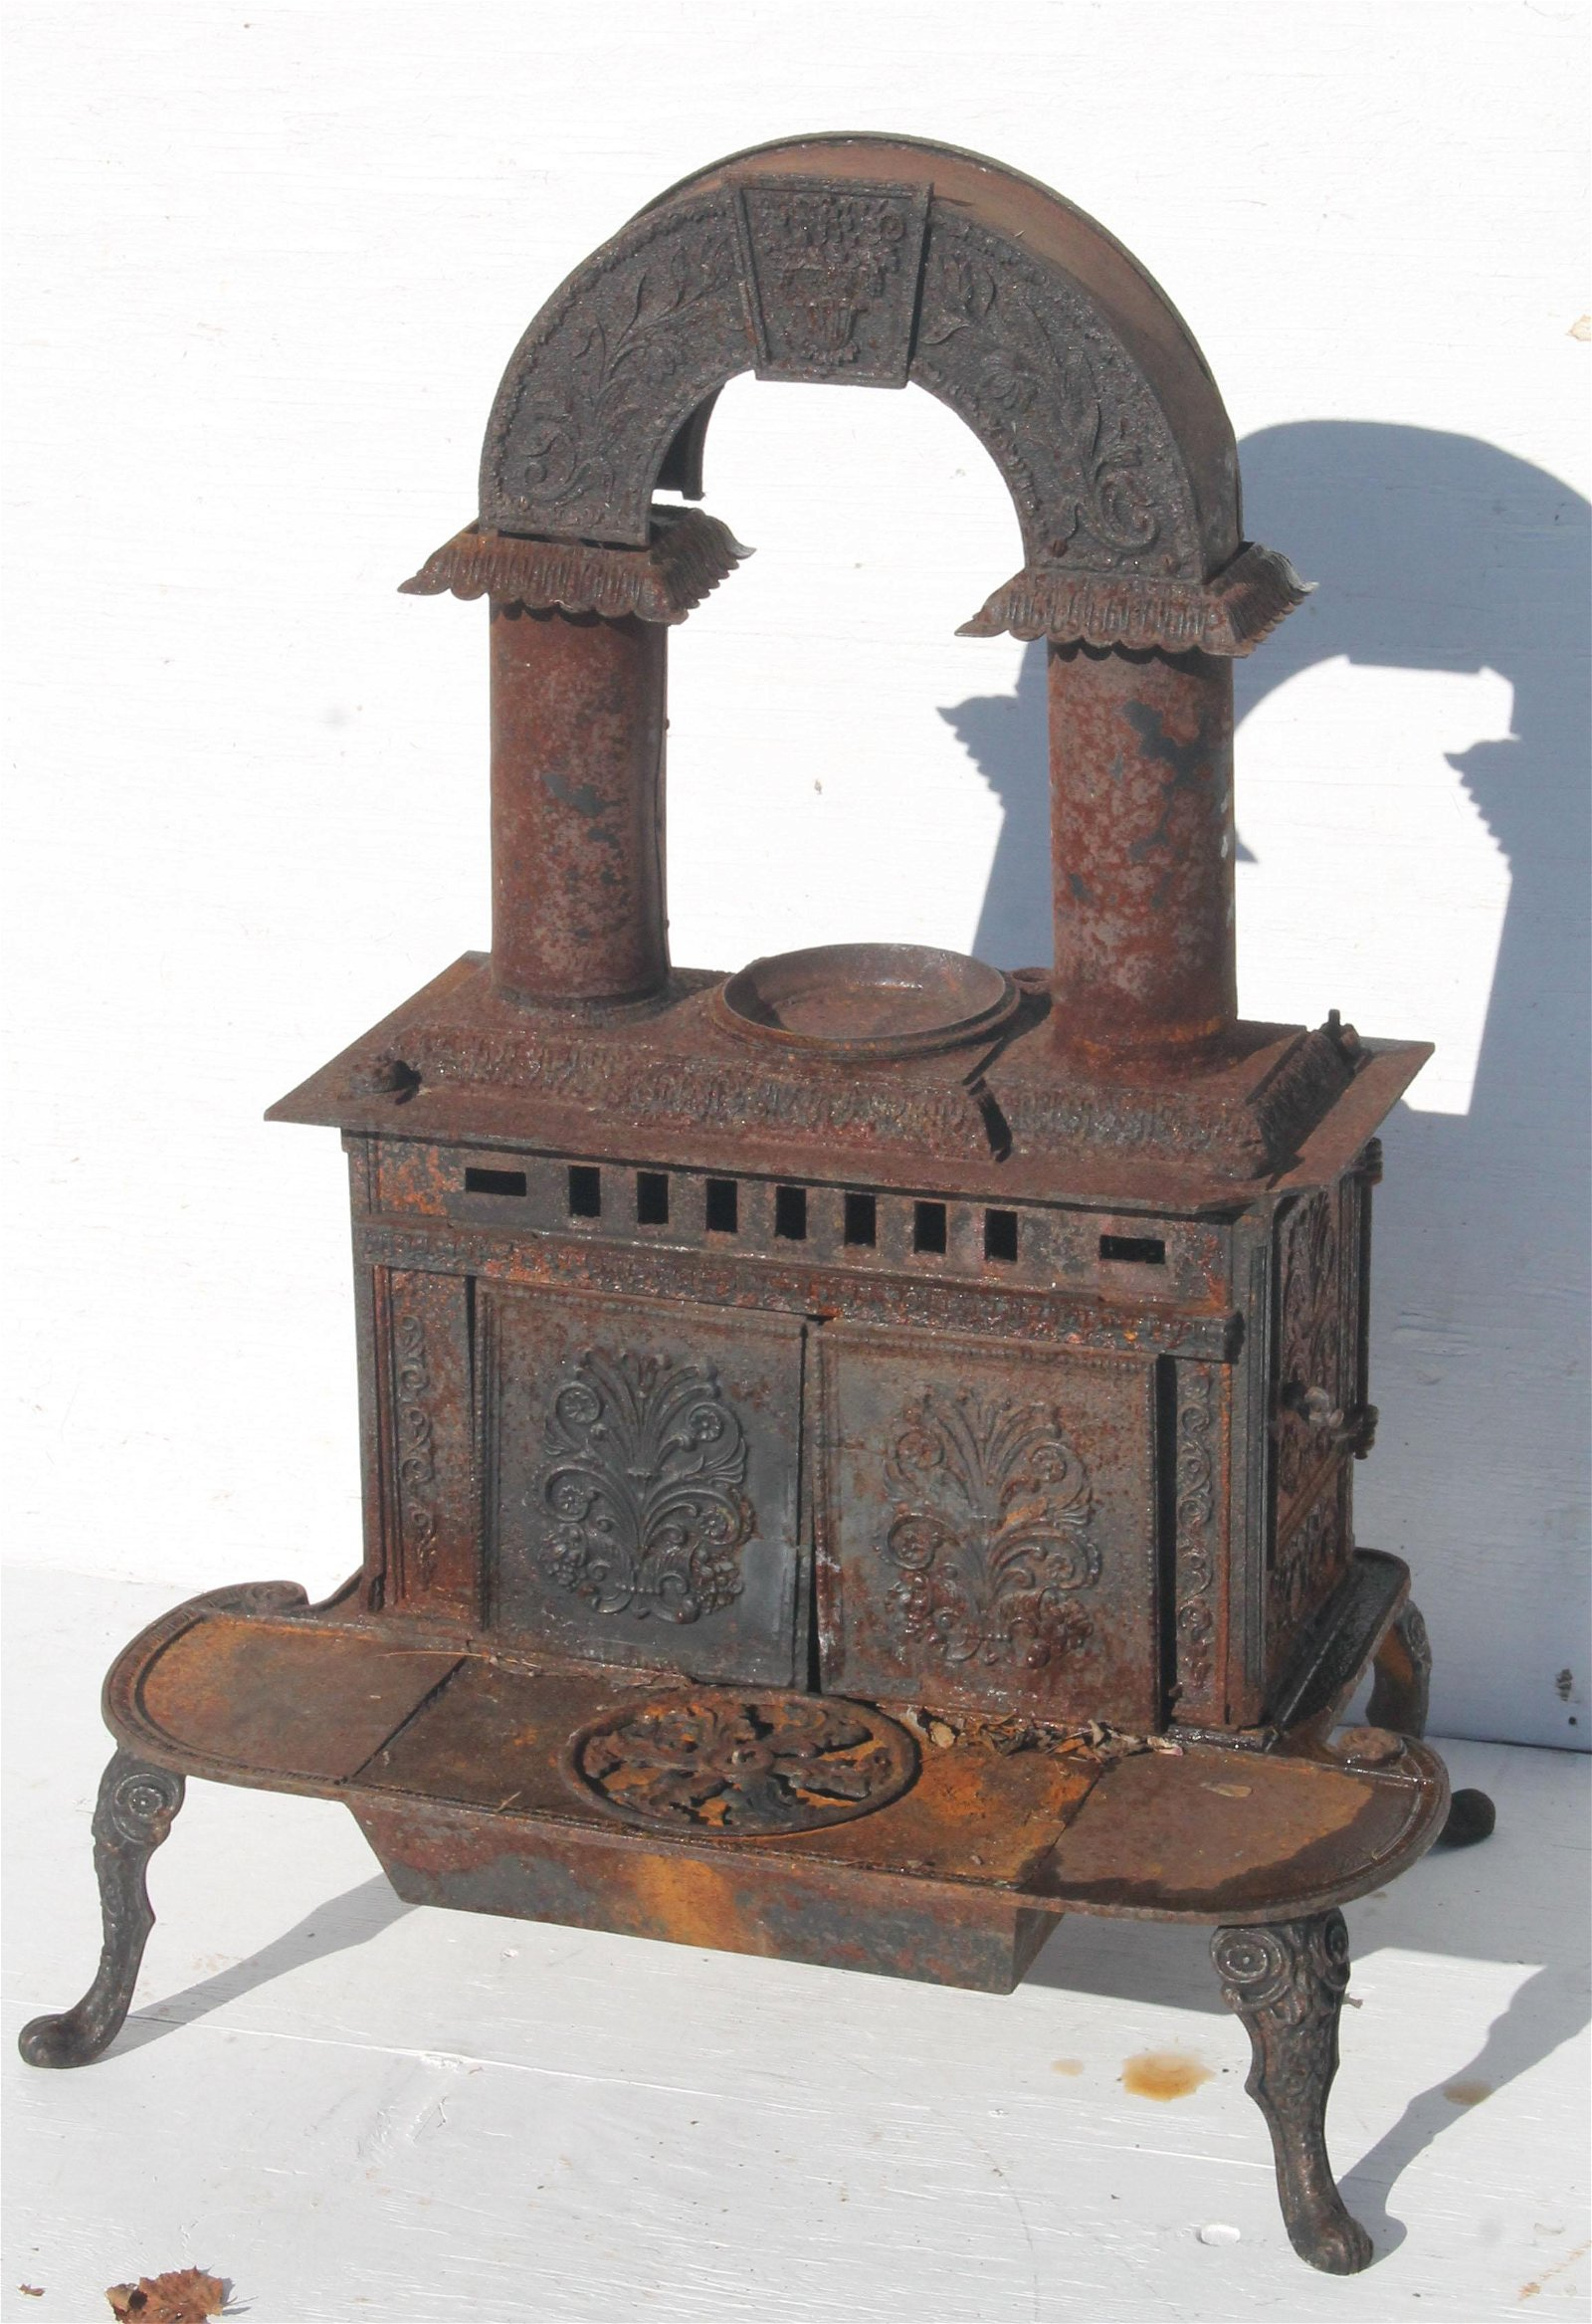 19thC cast iron and tin Franklin parlor stove - came